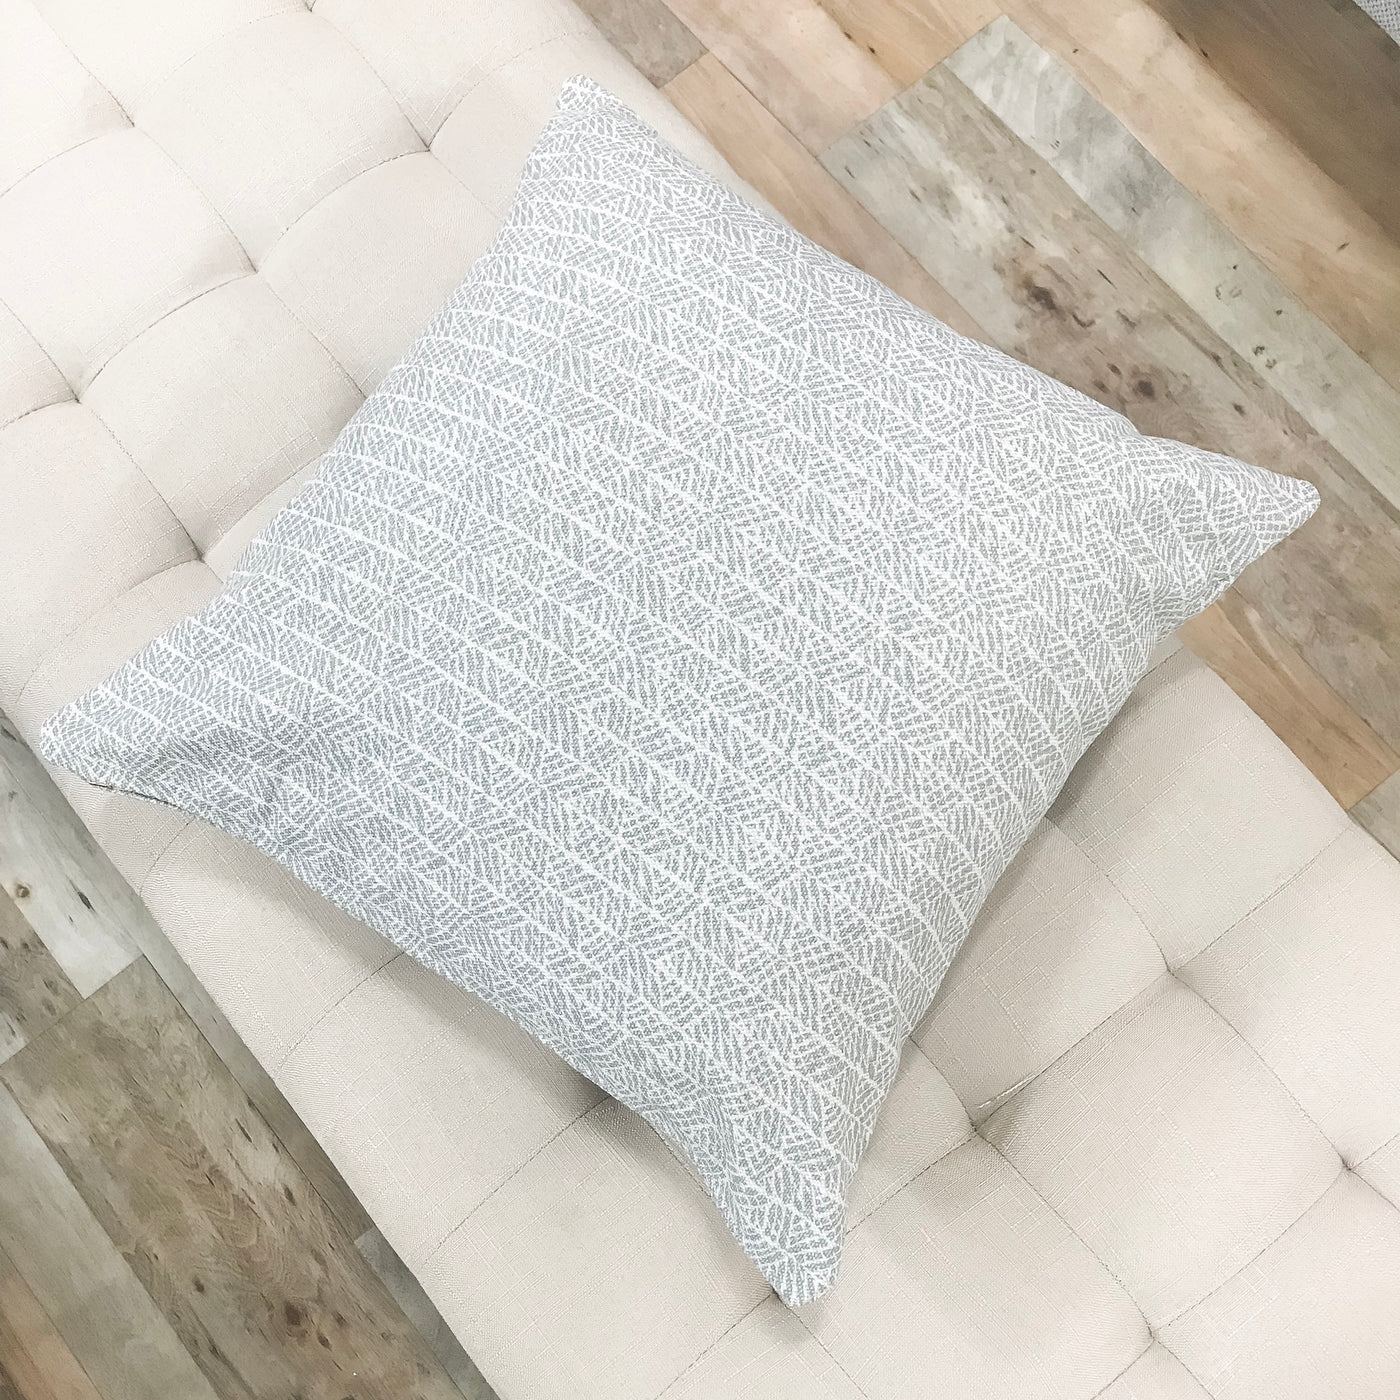 Uniquely stylish gray throw pillows - SIMONE - Studio Pillows